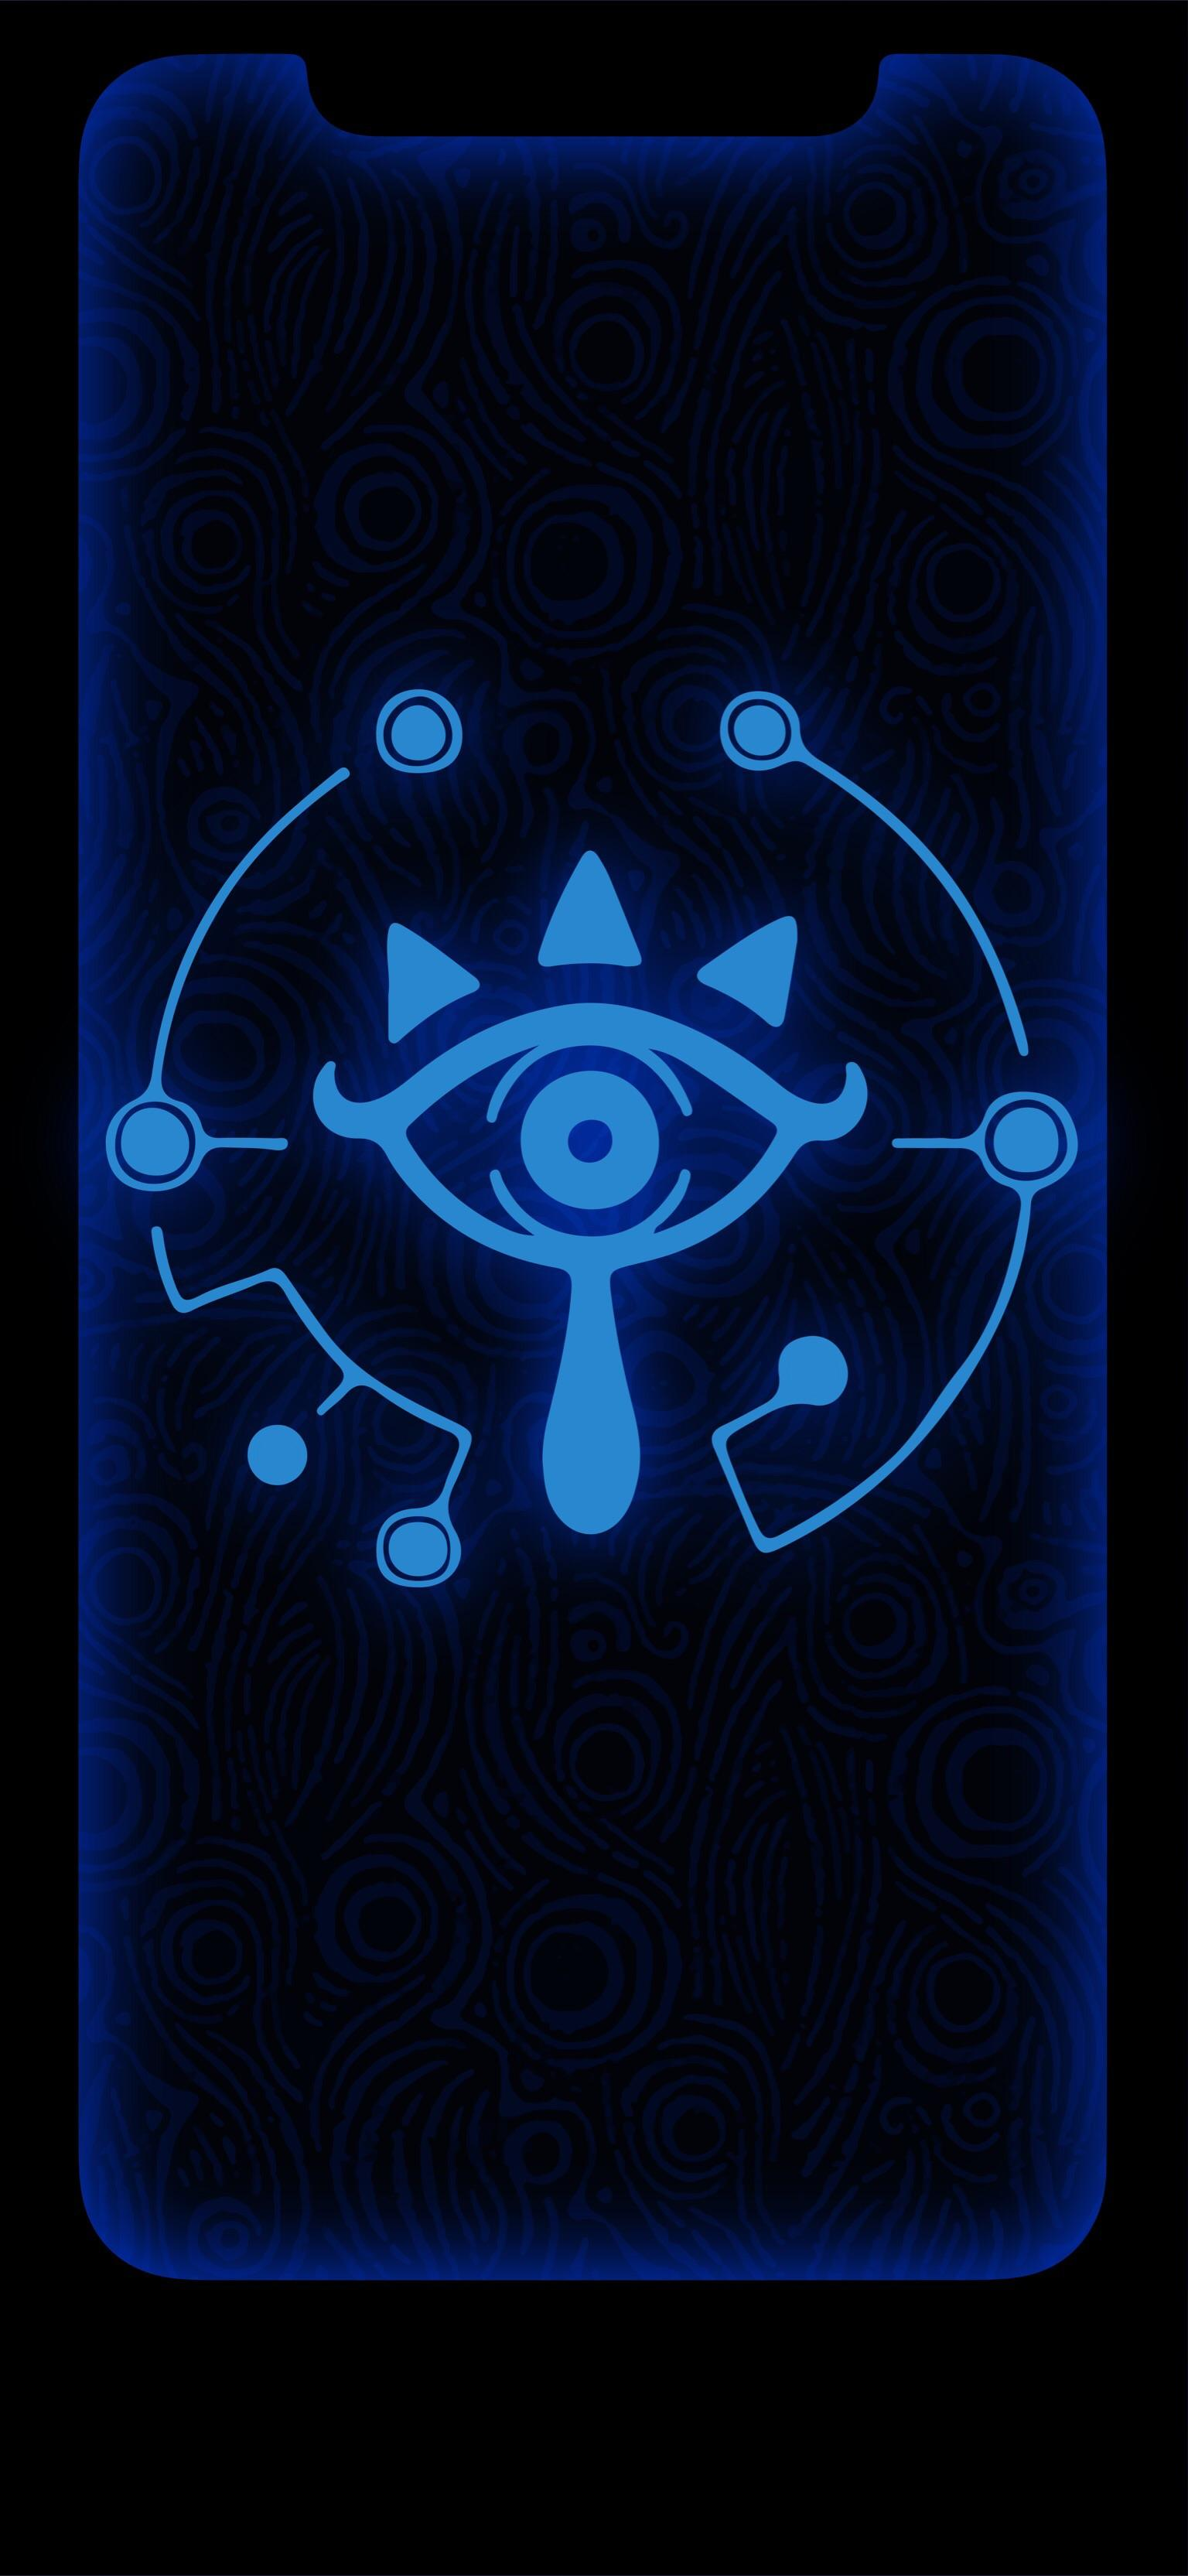 Free Download Made A Sheikah Slate Wallpaper For Iphone X